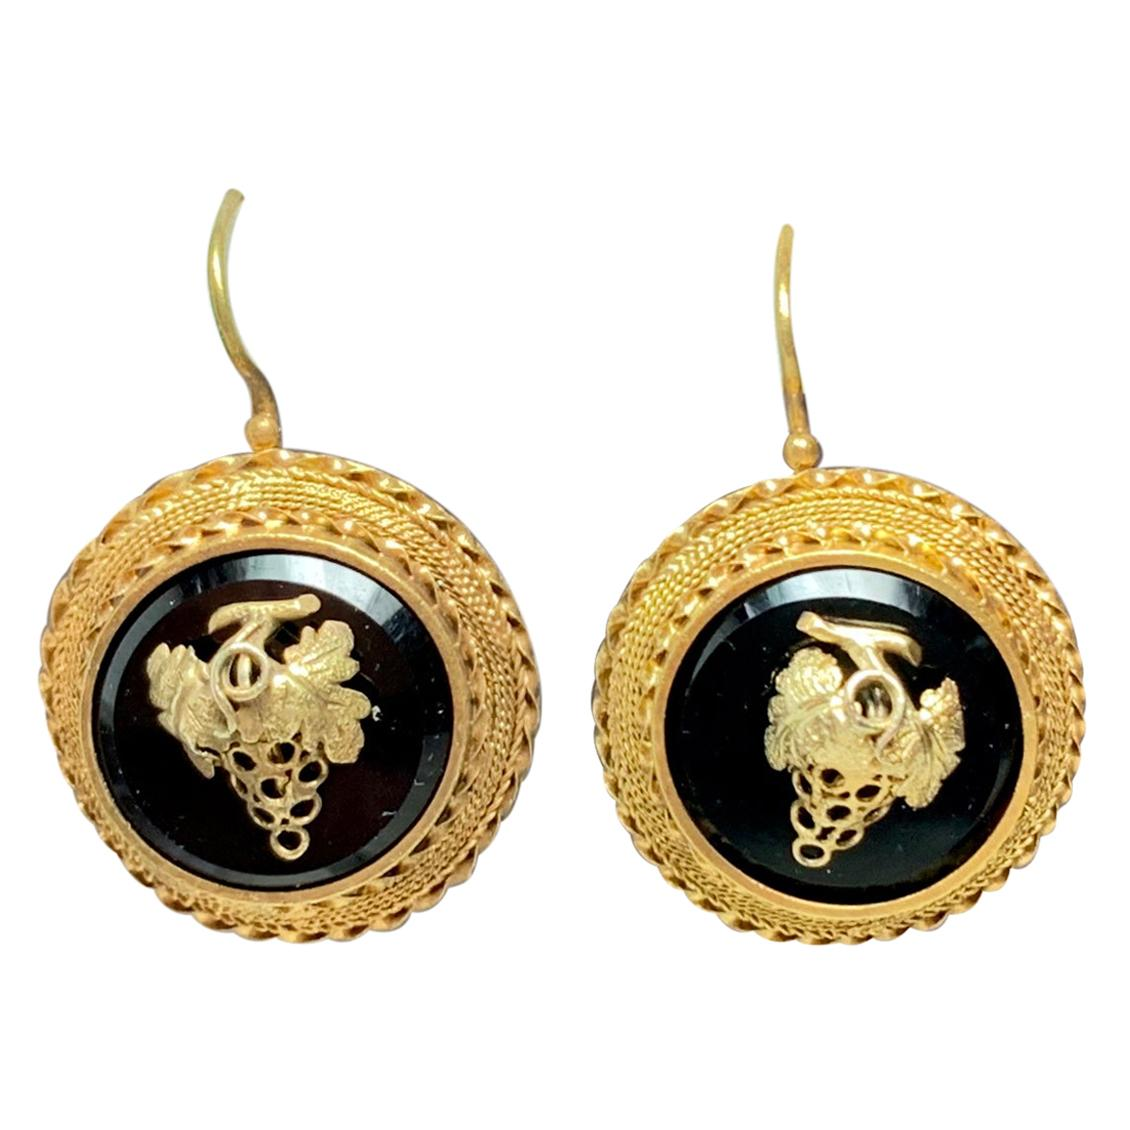 Victorian Grape Earrings Pendant Suite 14k Gold Black Onyx Etruscan Revival 1870